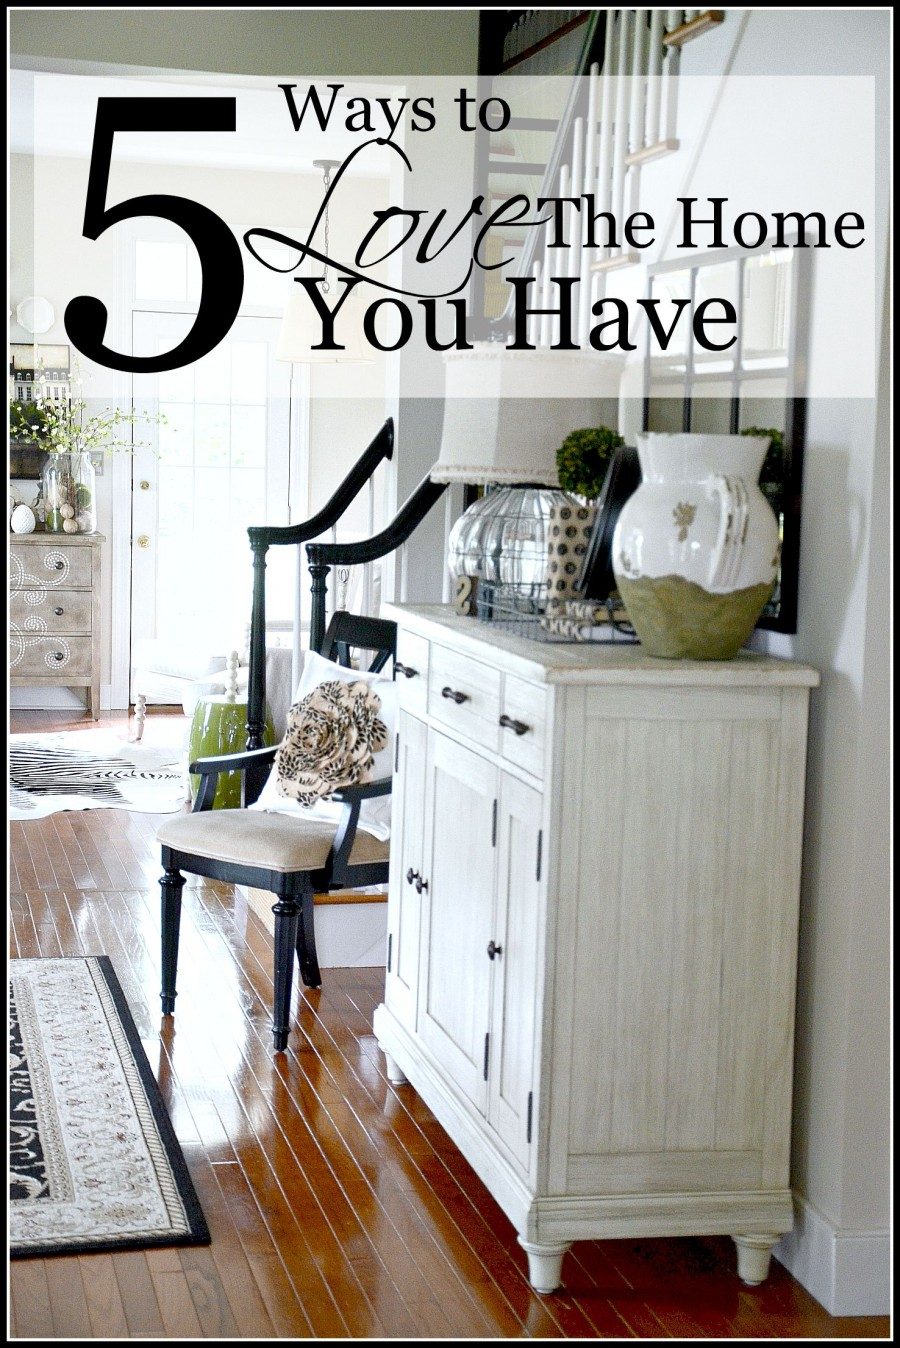 5 WAYS TO LOVE THE HOME YOU HAVE-stonegableblog.com